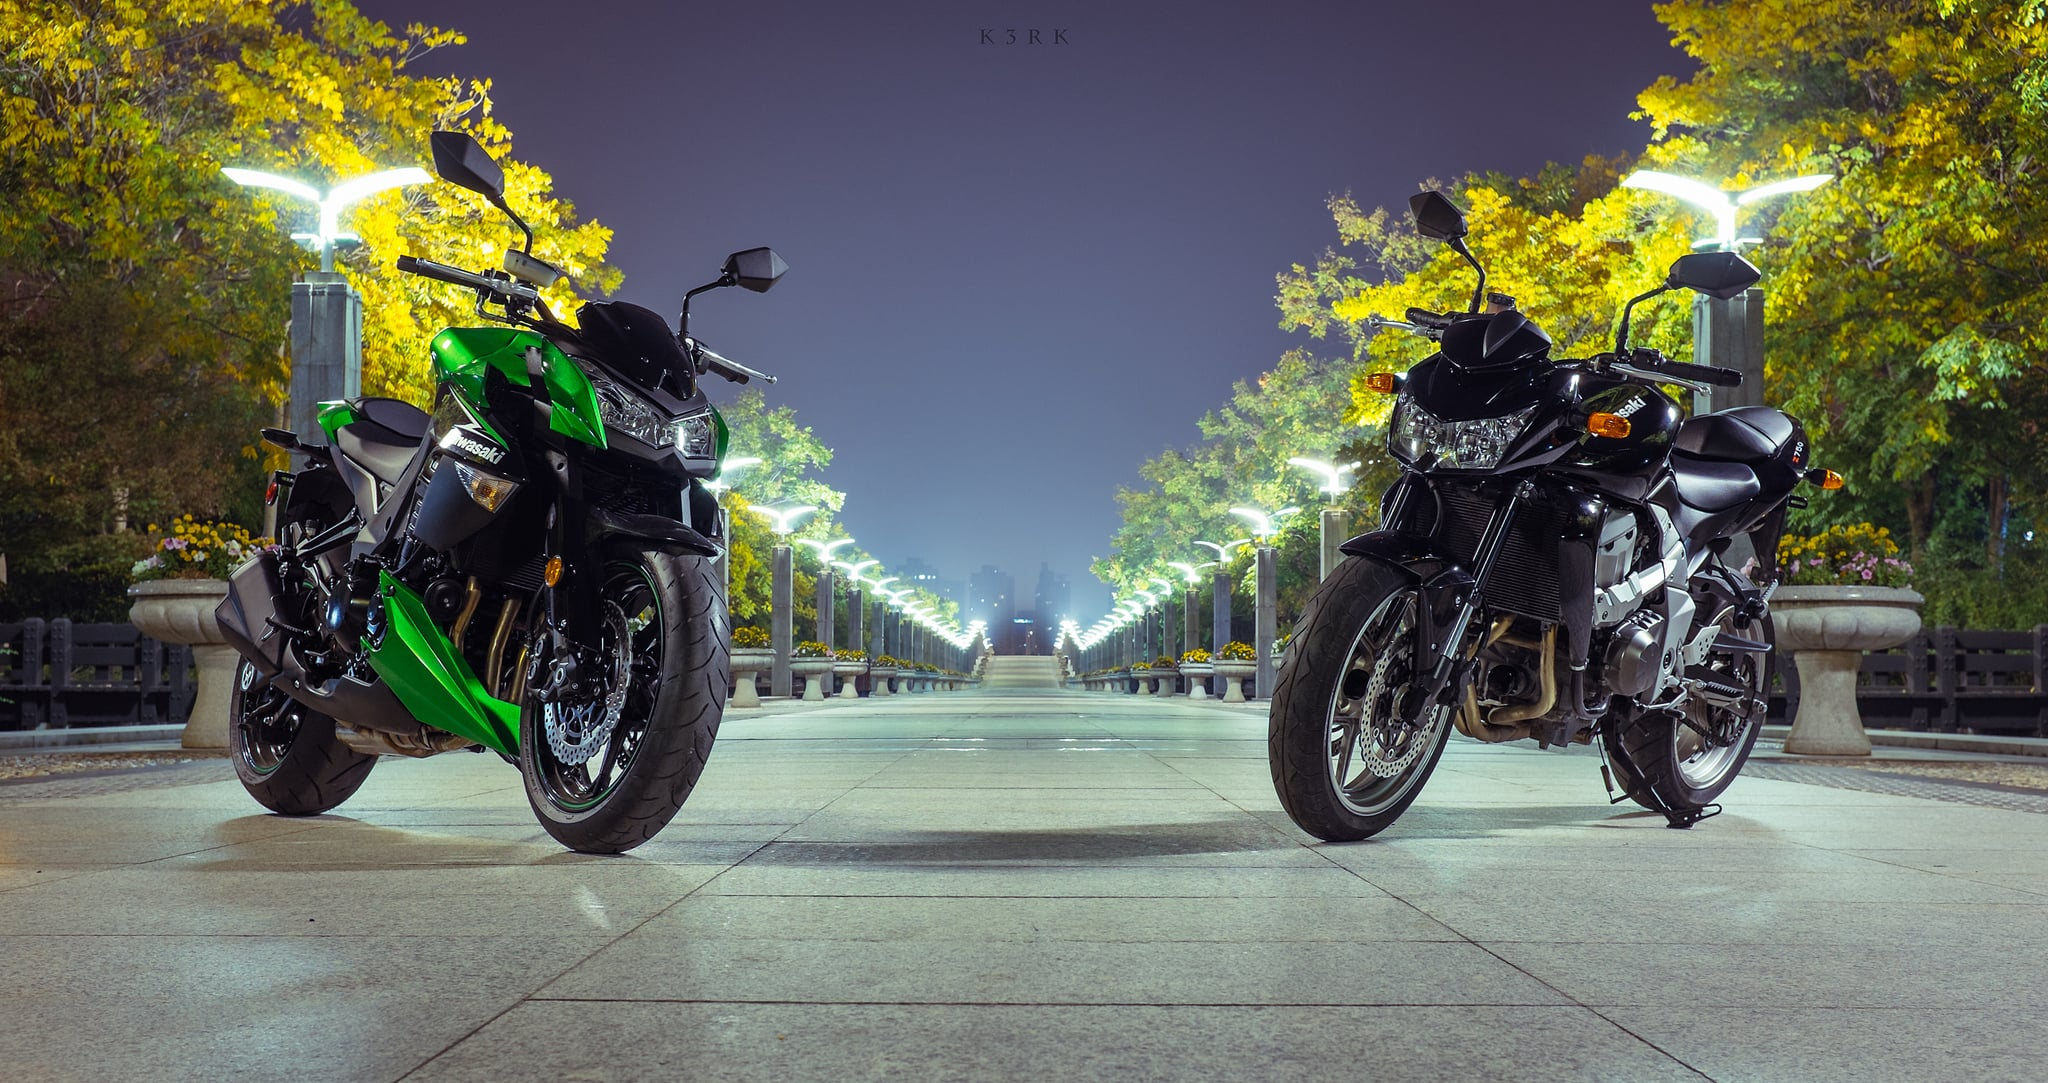 kawasaki z1000 wallpaper iphone